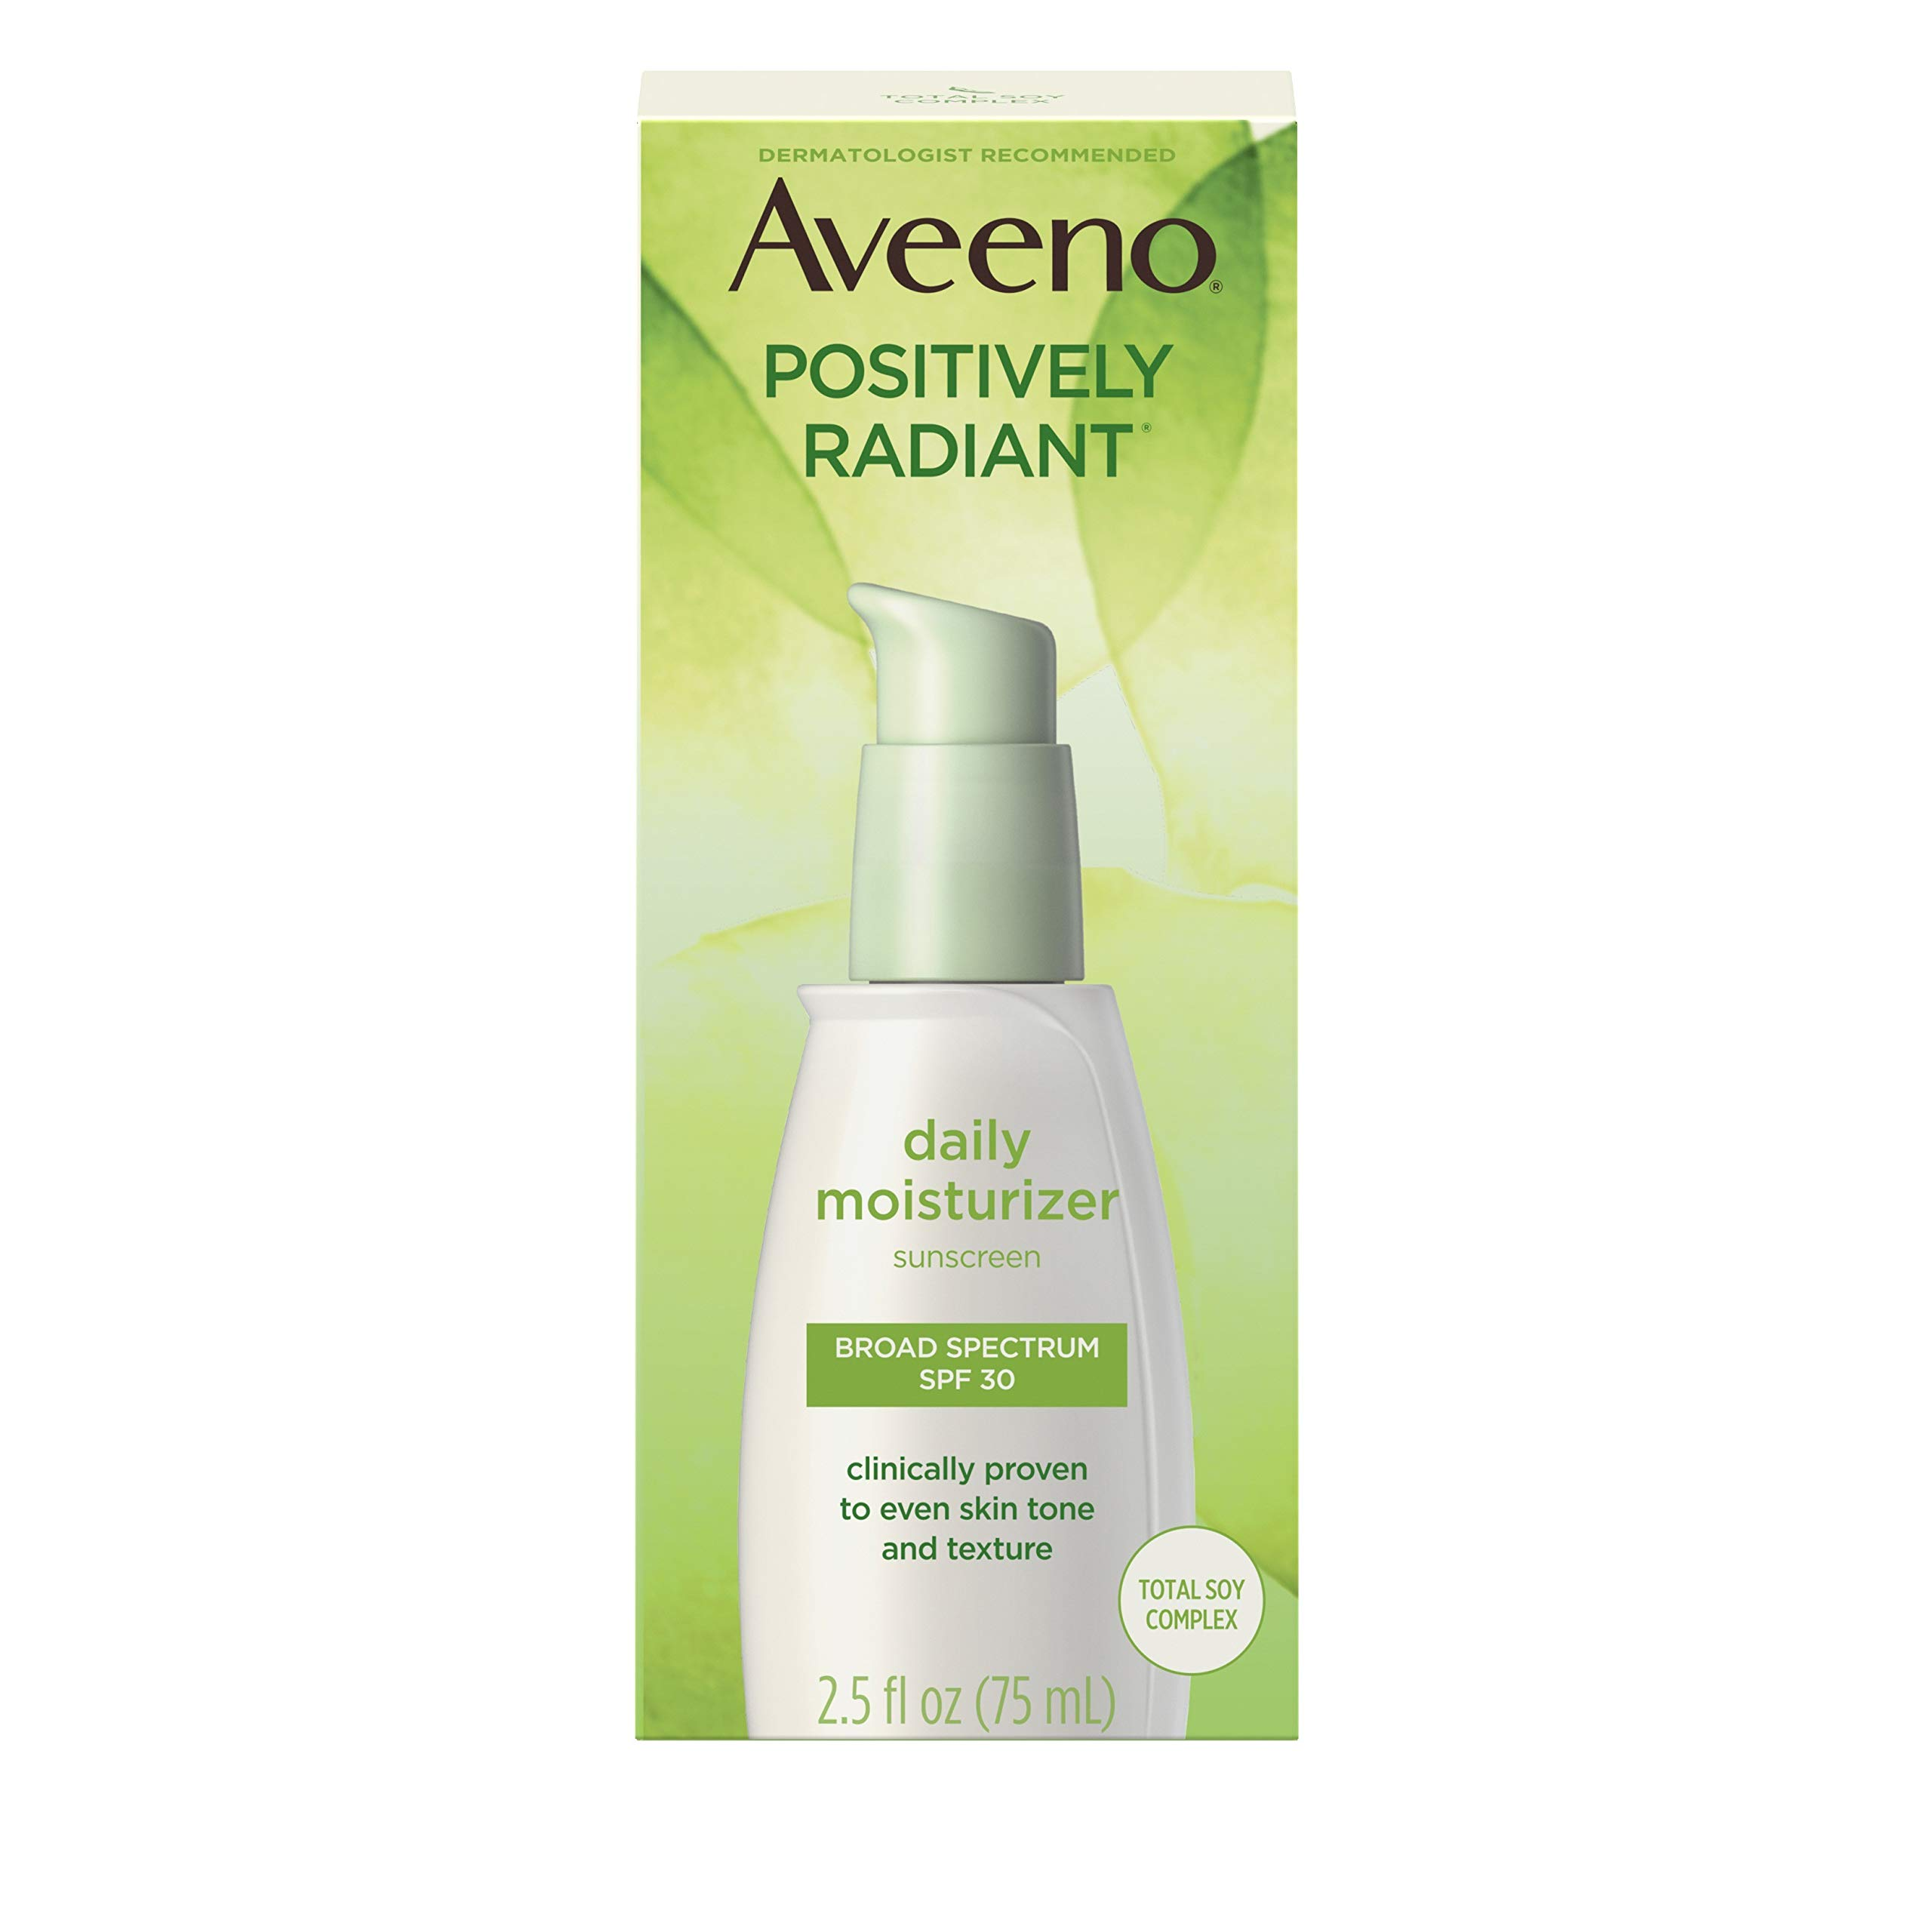 Aveeno Positively Radiant Daily Facial Moisturizer with Total Soy Complex and Broad Spectrum SPF 30 Sunscreen, Oil-Free and Non-Comedogenic, 2.5 fl. oz by Aveeno